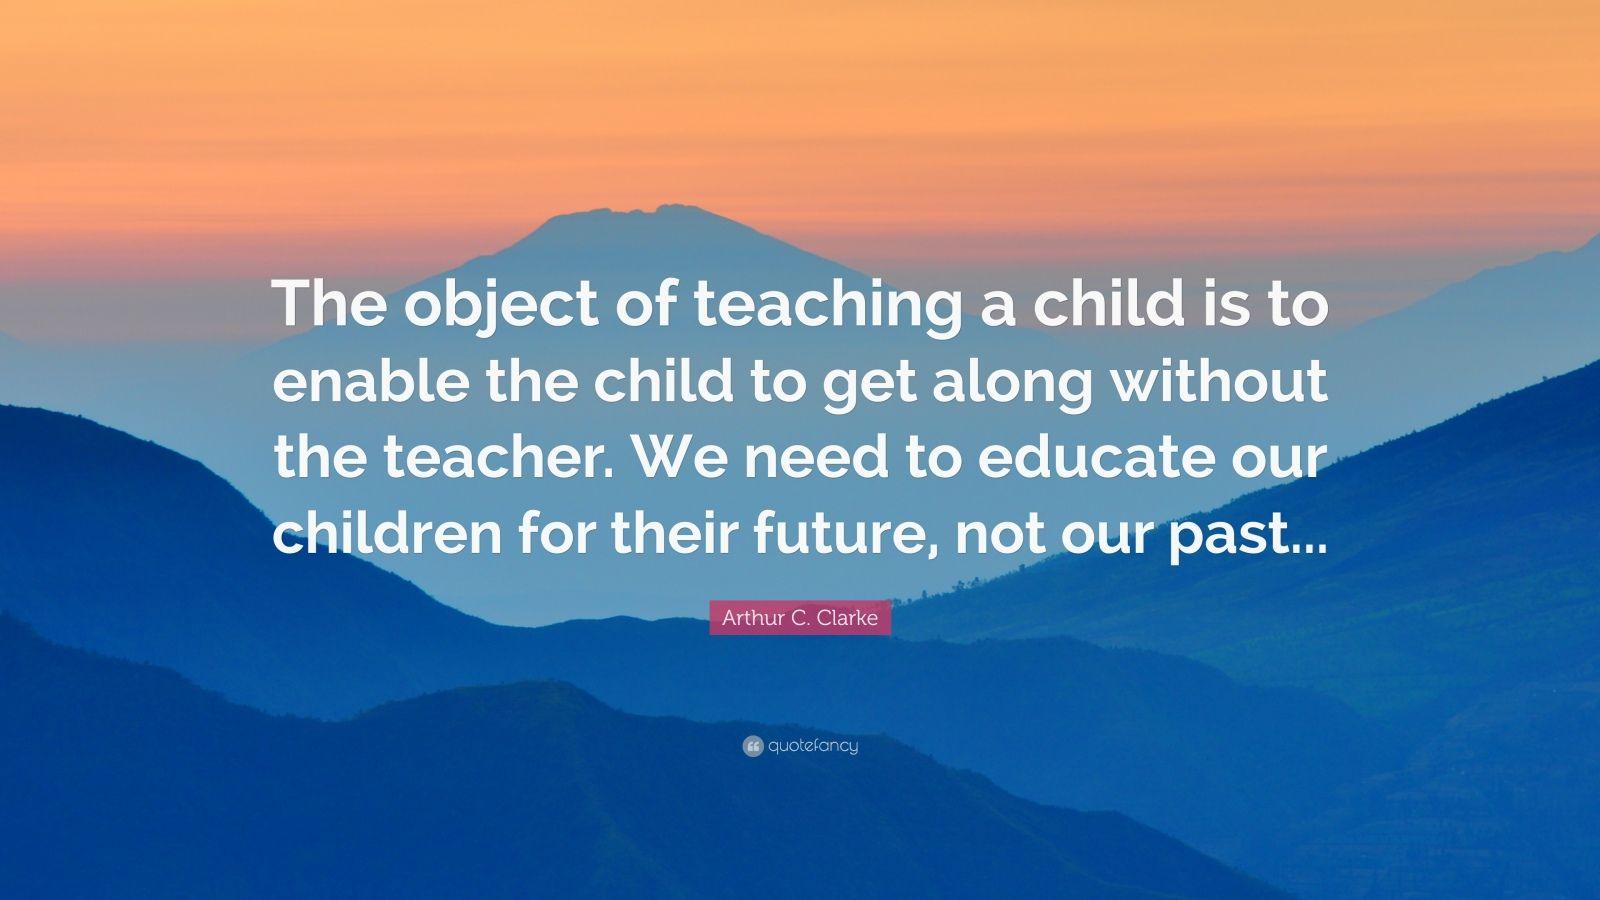 """Arthur C. Clarke Quote: """"The object of teaching a child is to enable the child to get along without the teacher. We need to educate our children for their future, not our past..."""""""